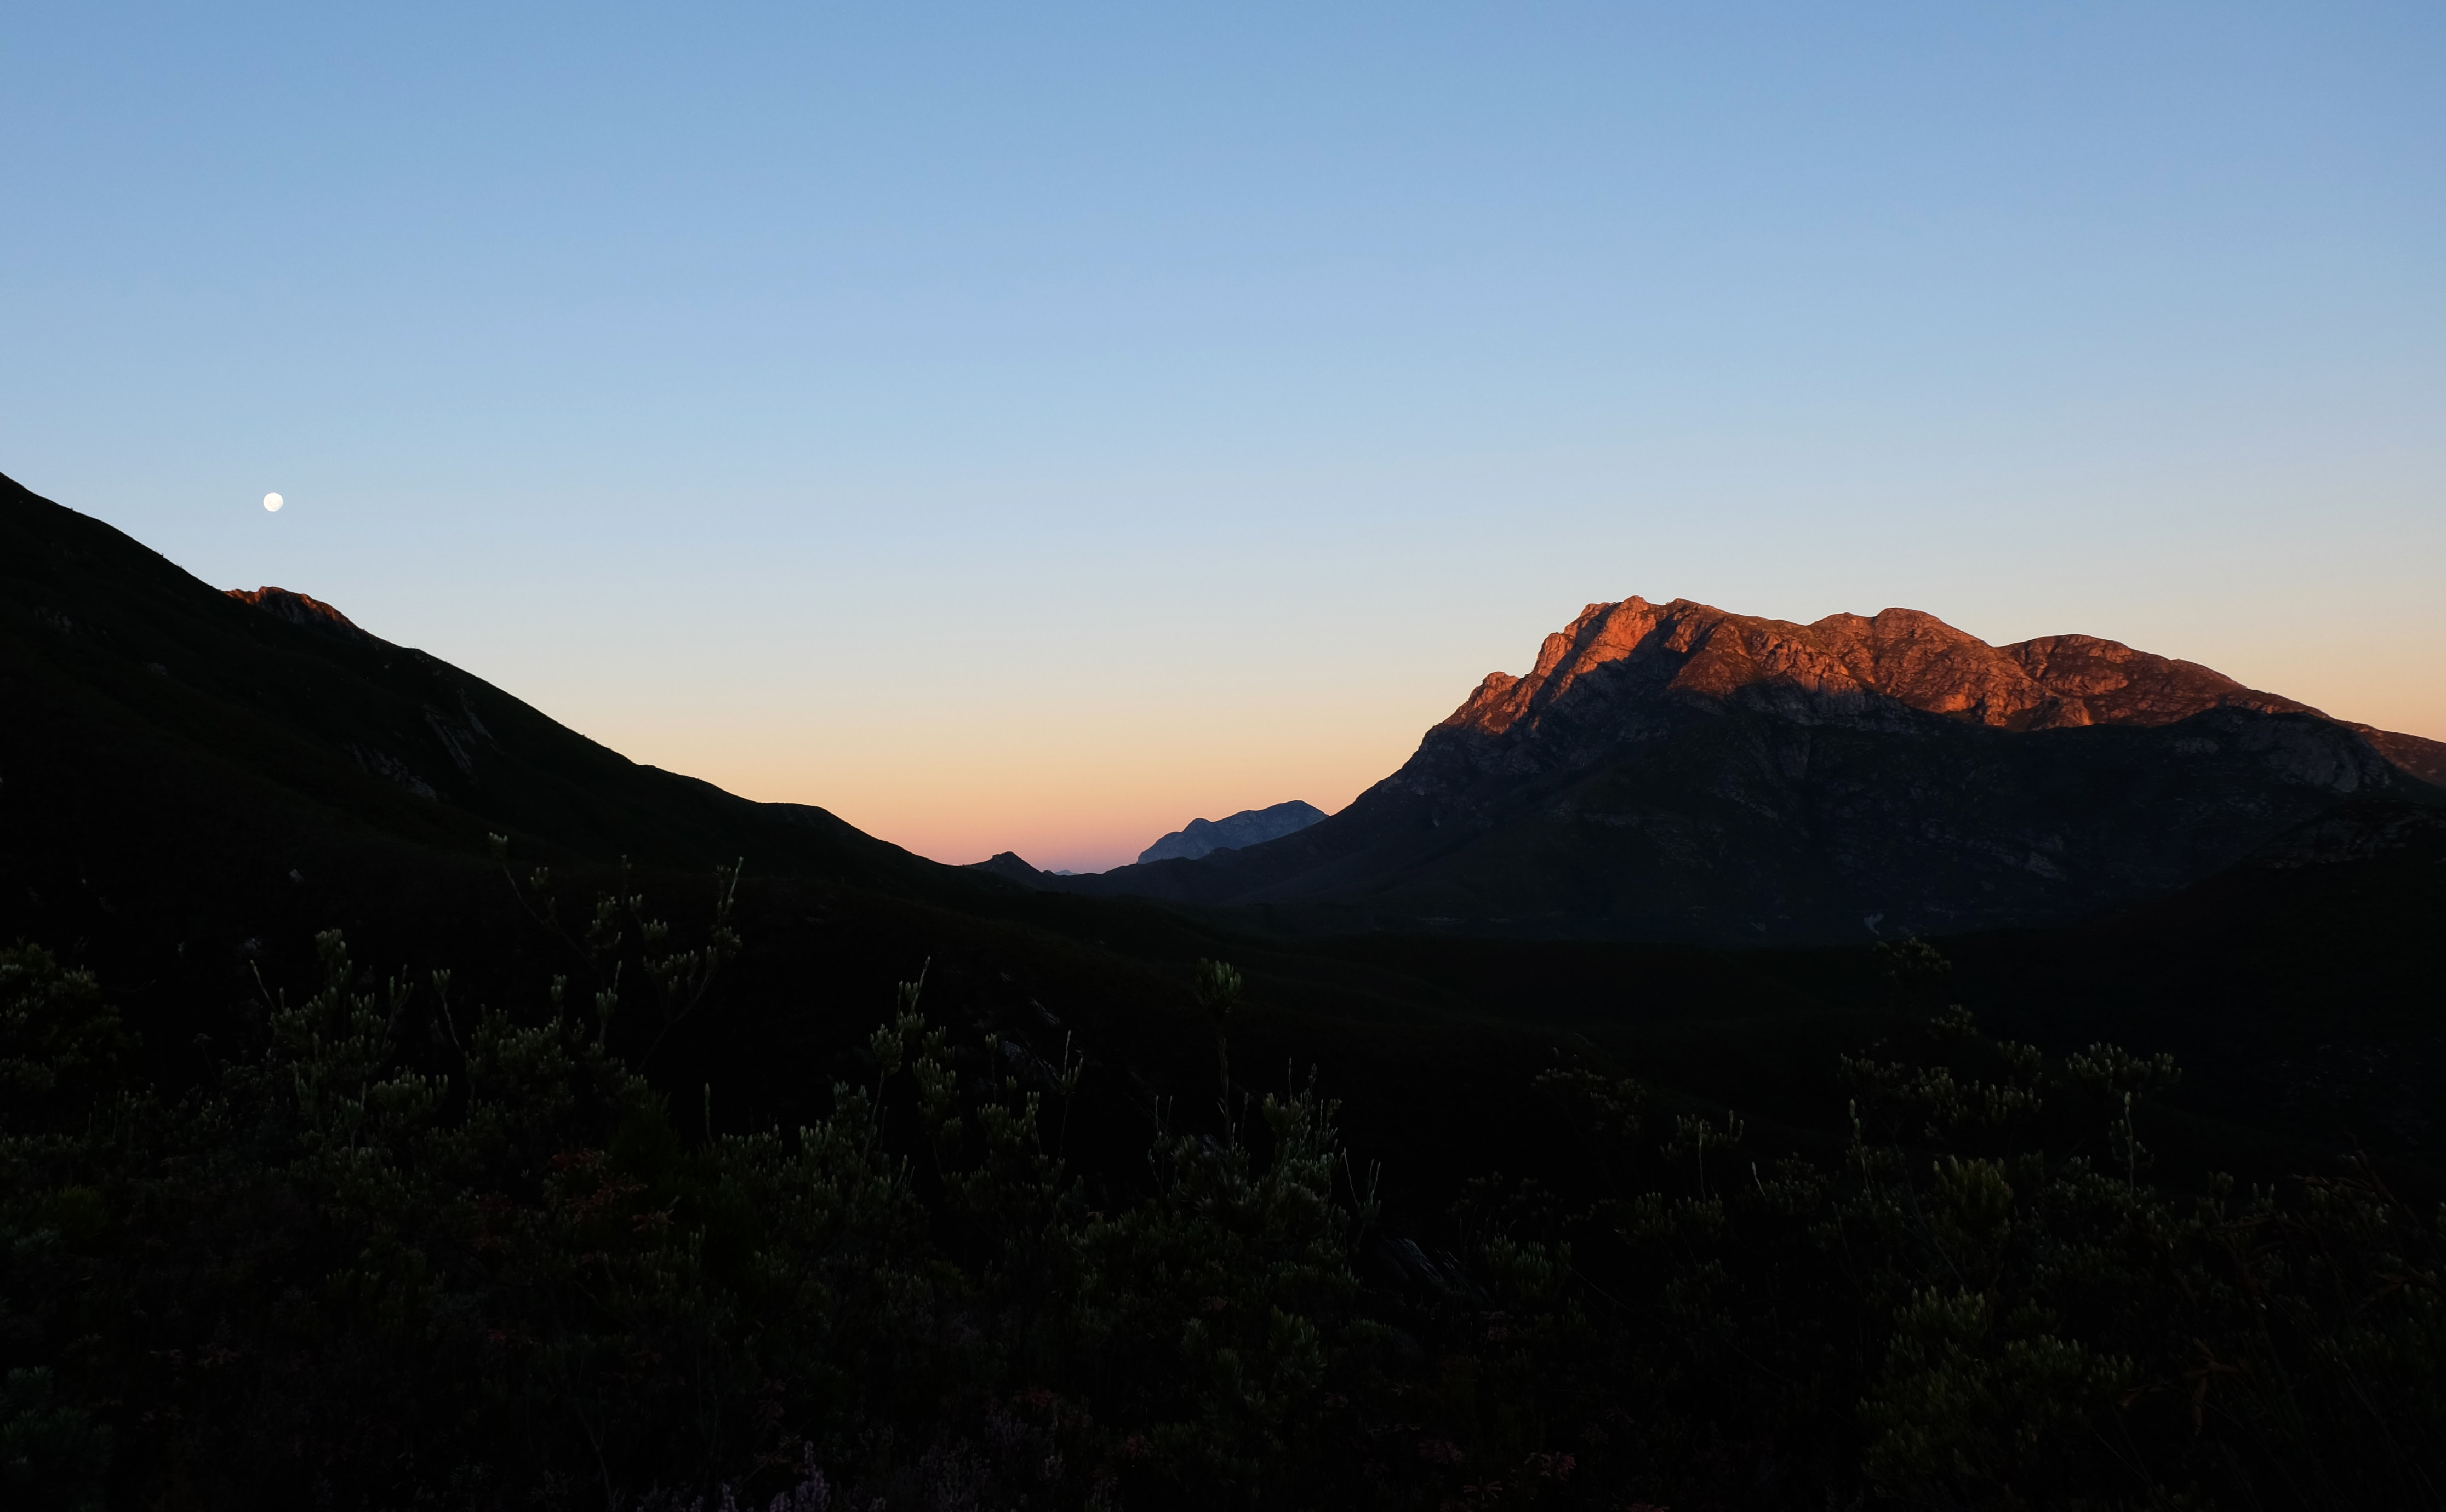 A full moon in the evening sky over the silhouettes of jagged mountains in Outeniqua Pass